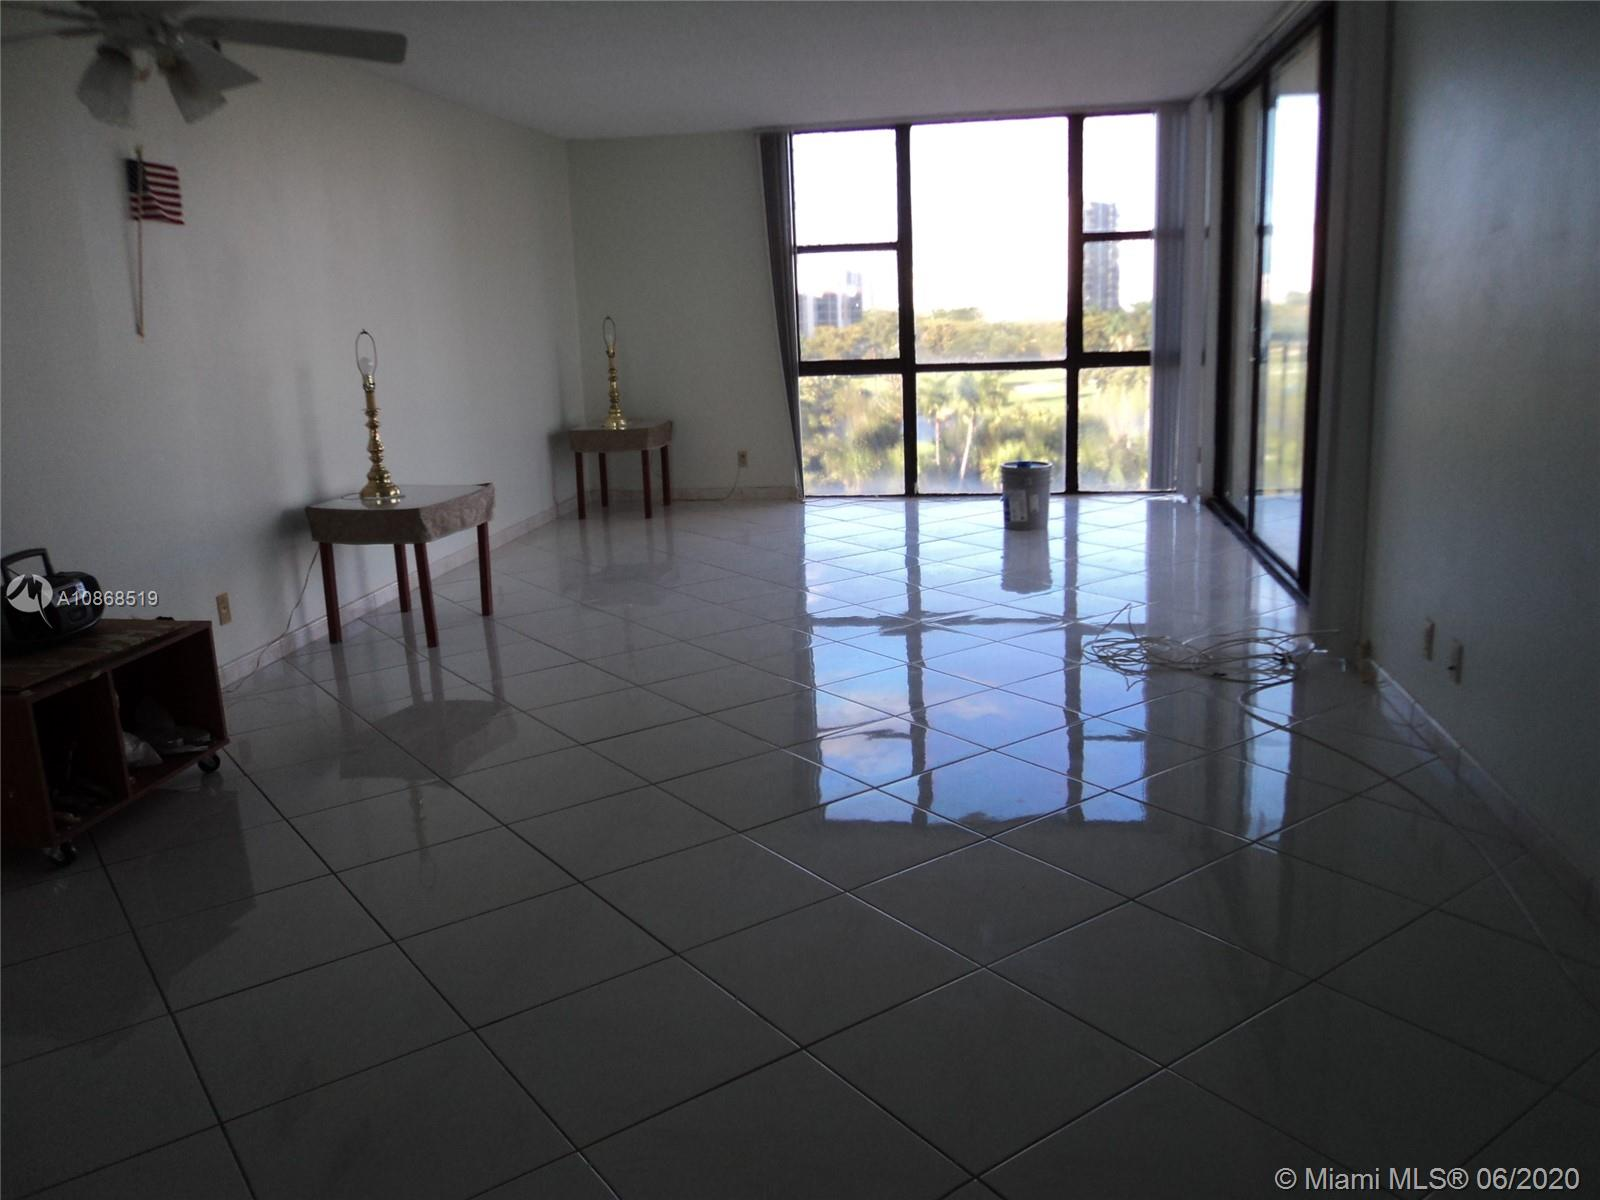 Photo of 20301 Country Club Dr #623, Aventura, Florida, 33180 - Large Living Room Almost 30 Feet Long .  All Rooms have a view to the golf course.